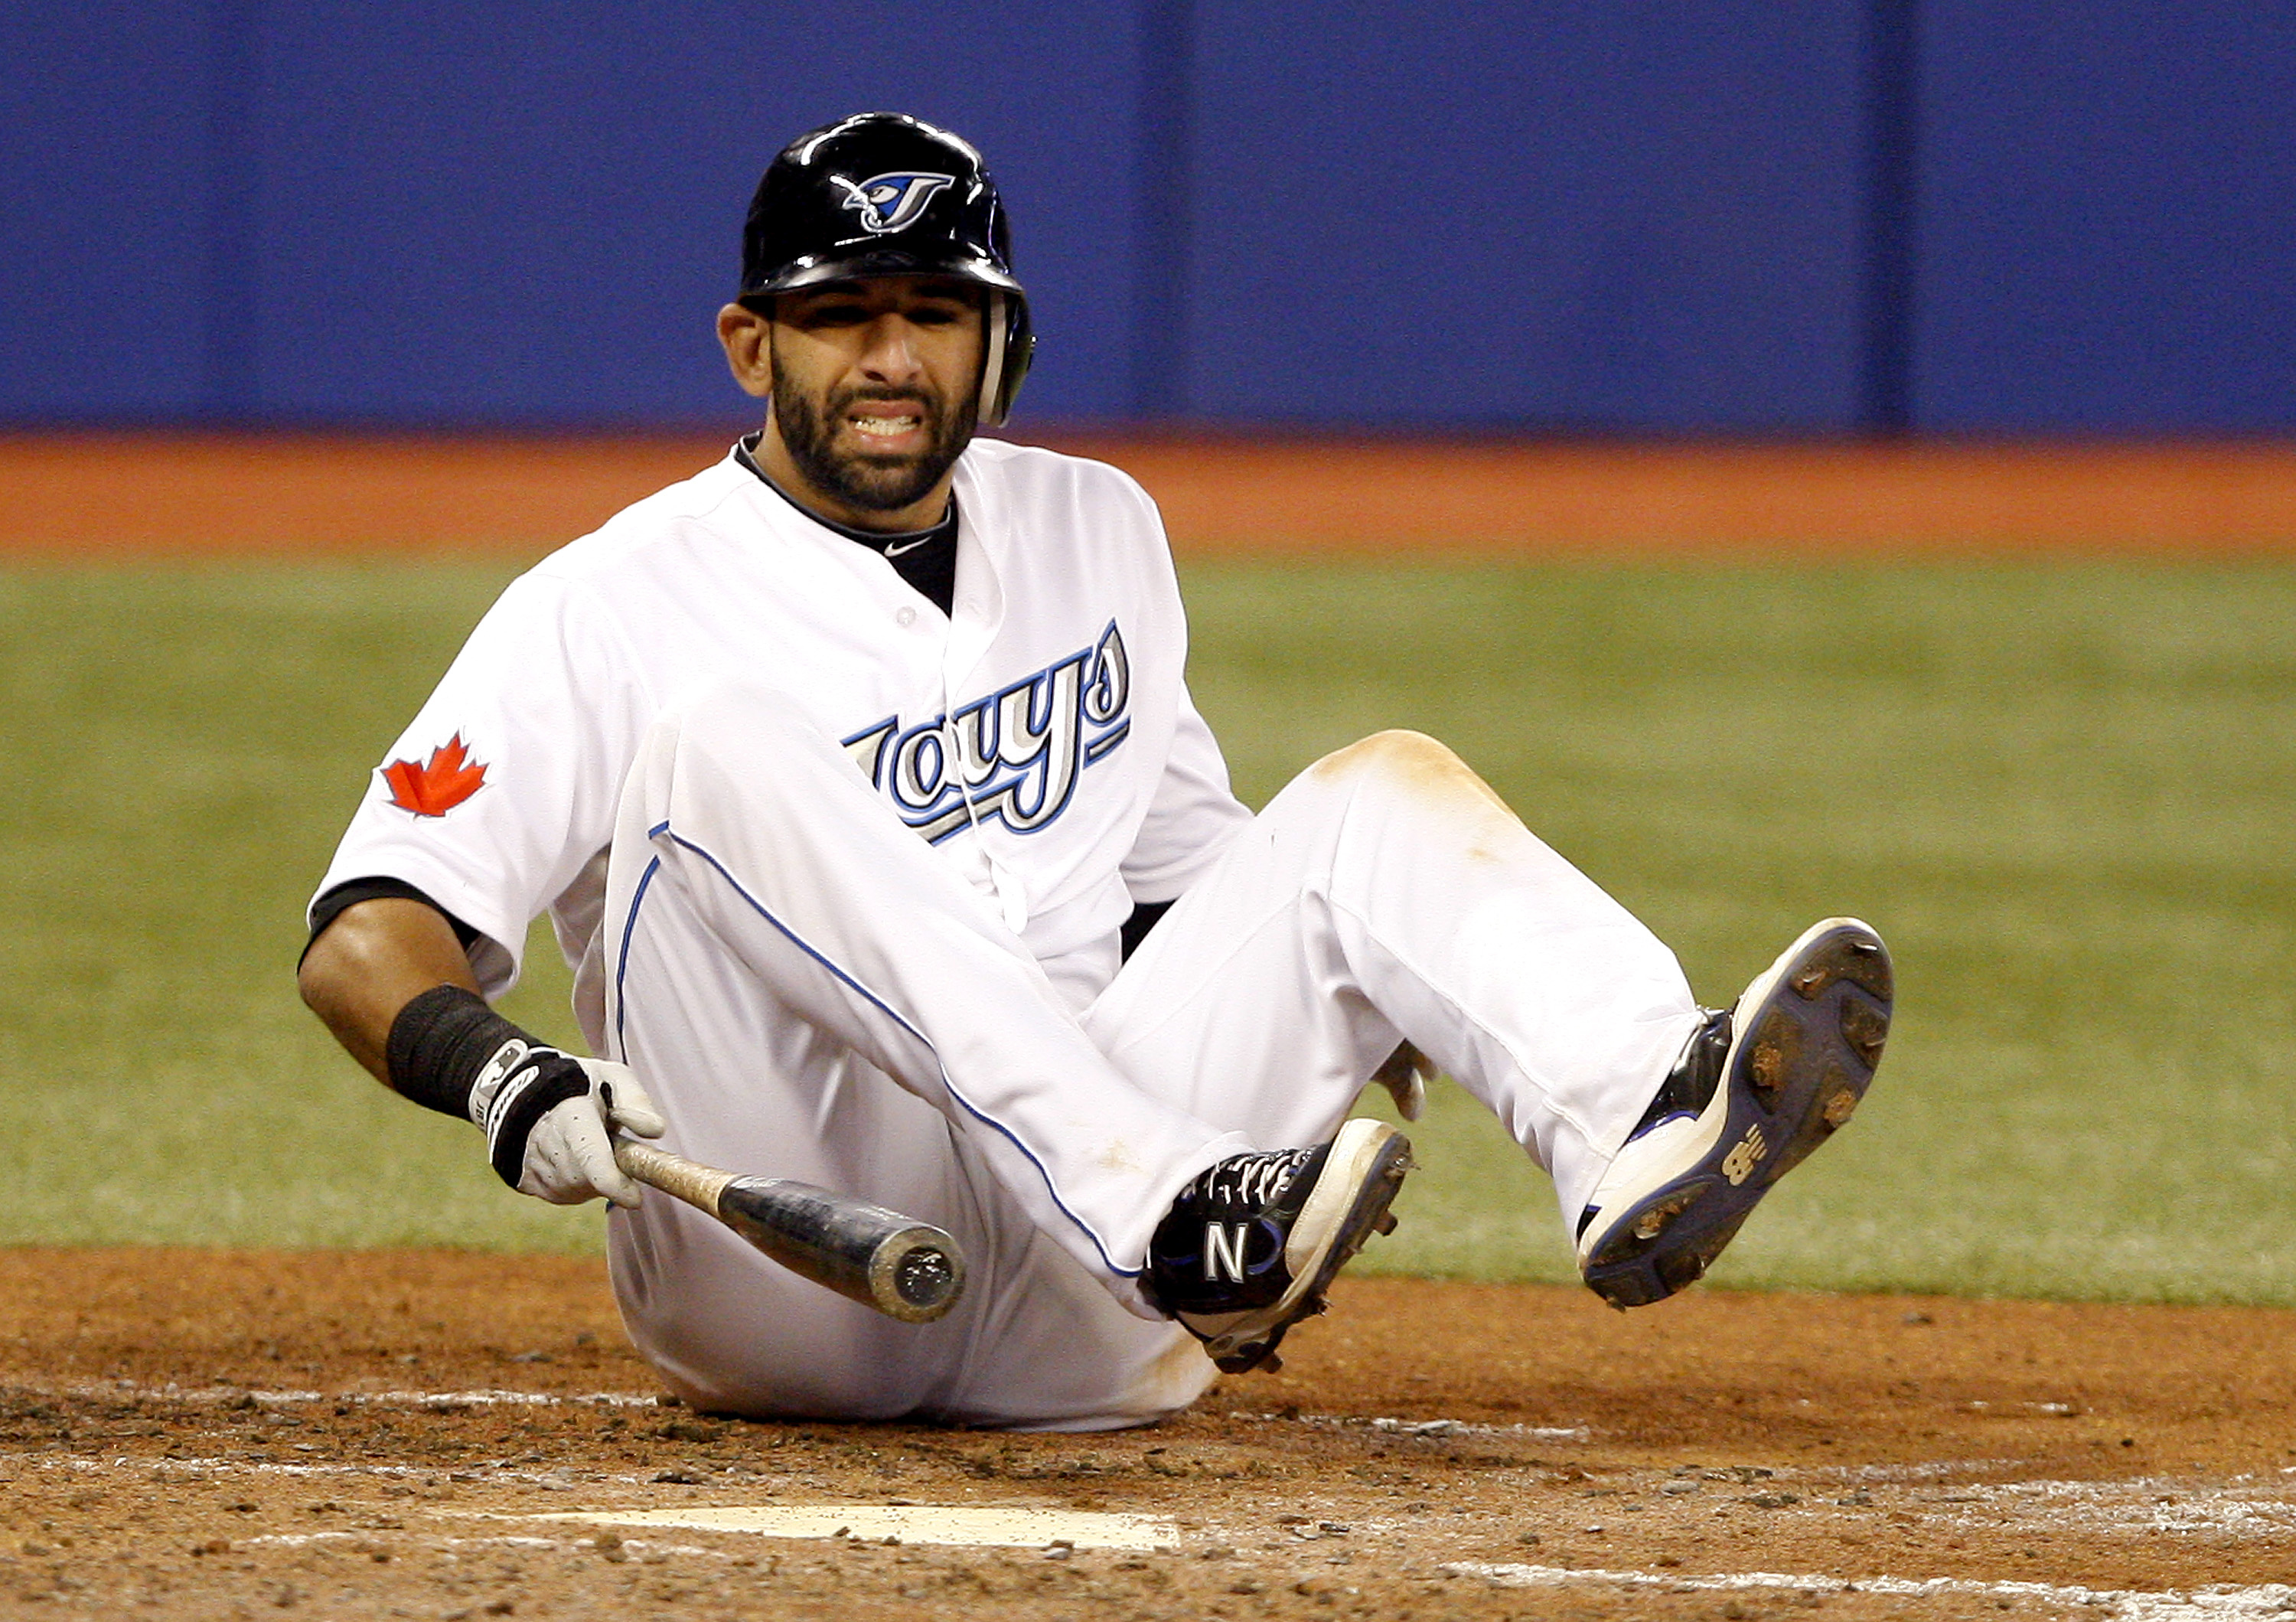 Jose Bautista was last year's rags-to-riches story in fantasy baseball